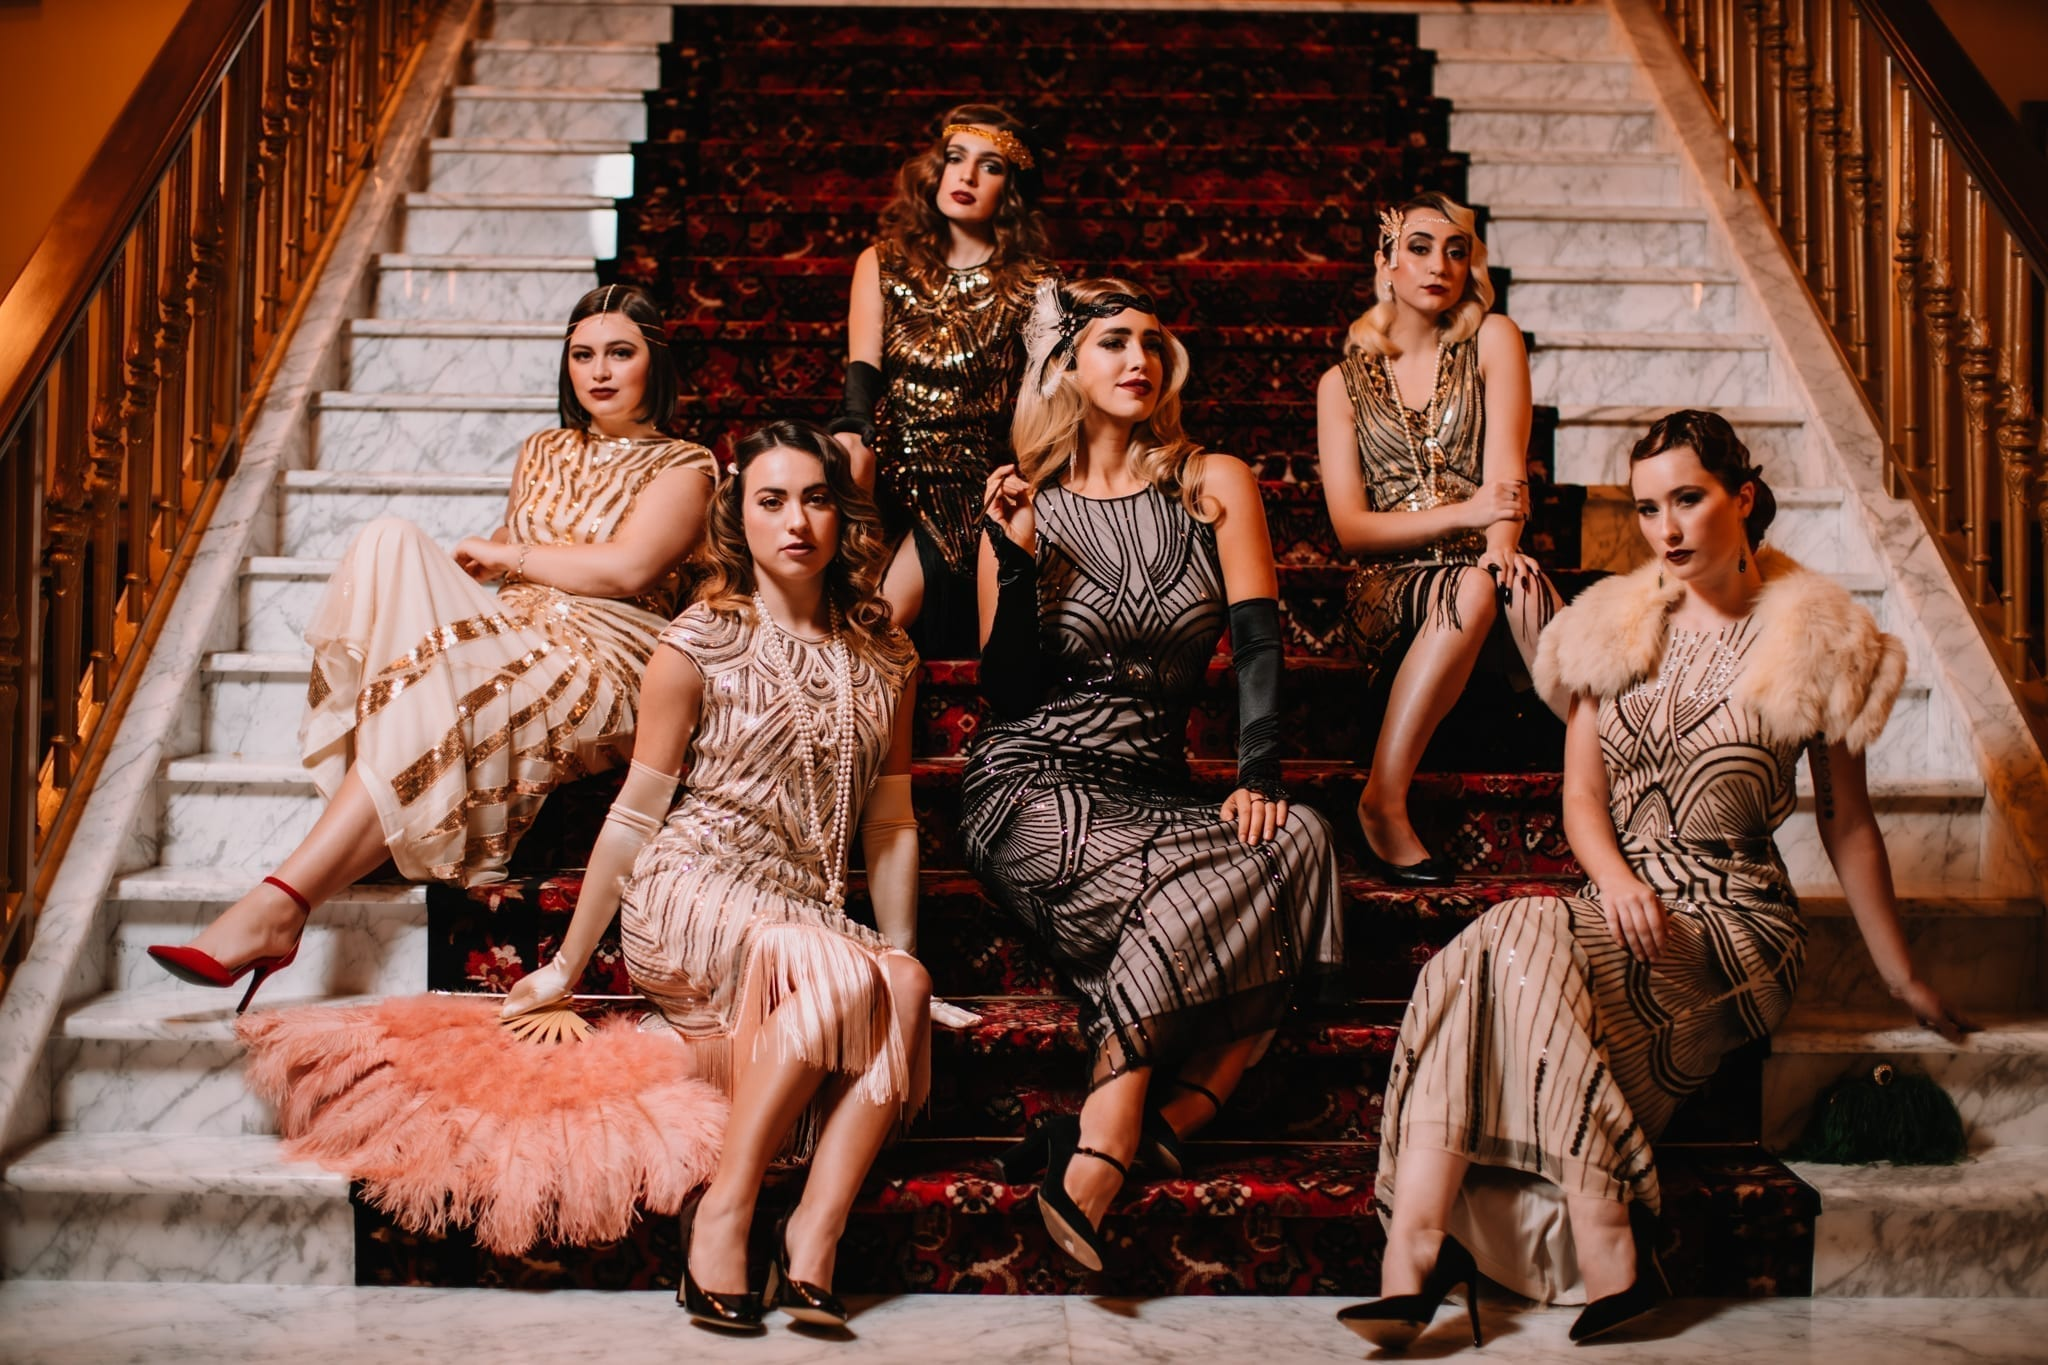 A GROUP OF FIVE WOMEN WEARING 20S THEMED DRESSES SITTING ON A STAIR CASE IN ATLANTIC CITY SHOT BY MEERLOO PHOTOGRAPHY